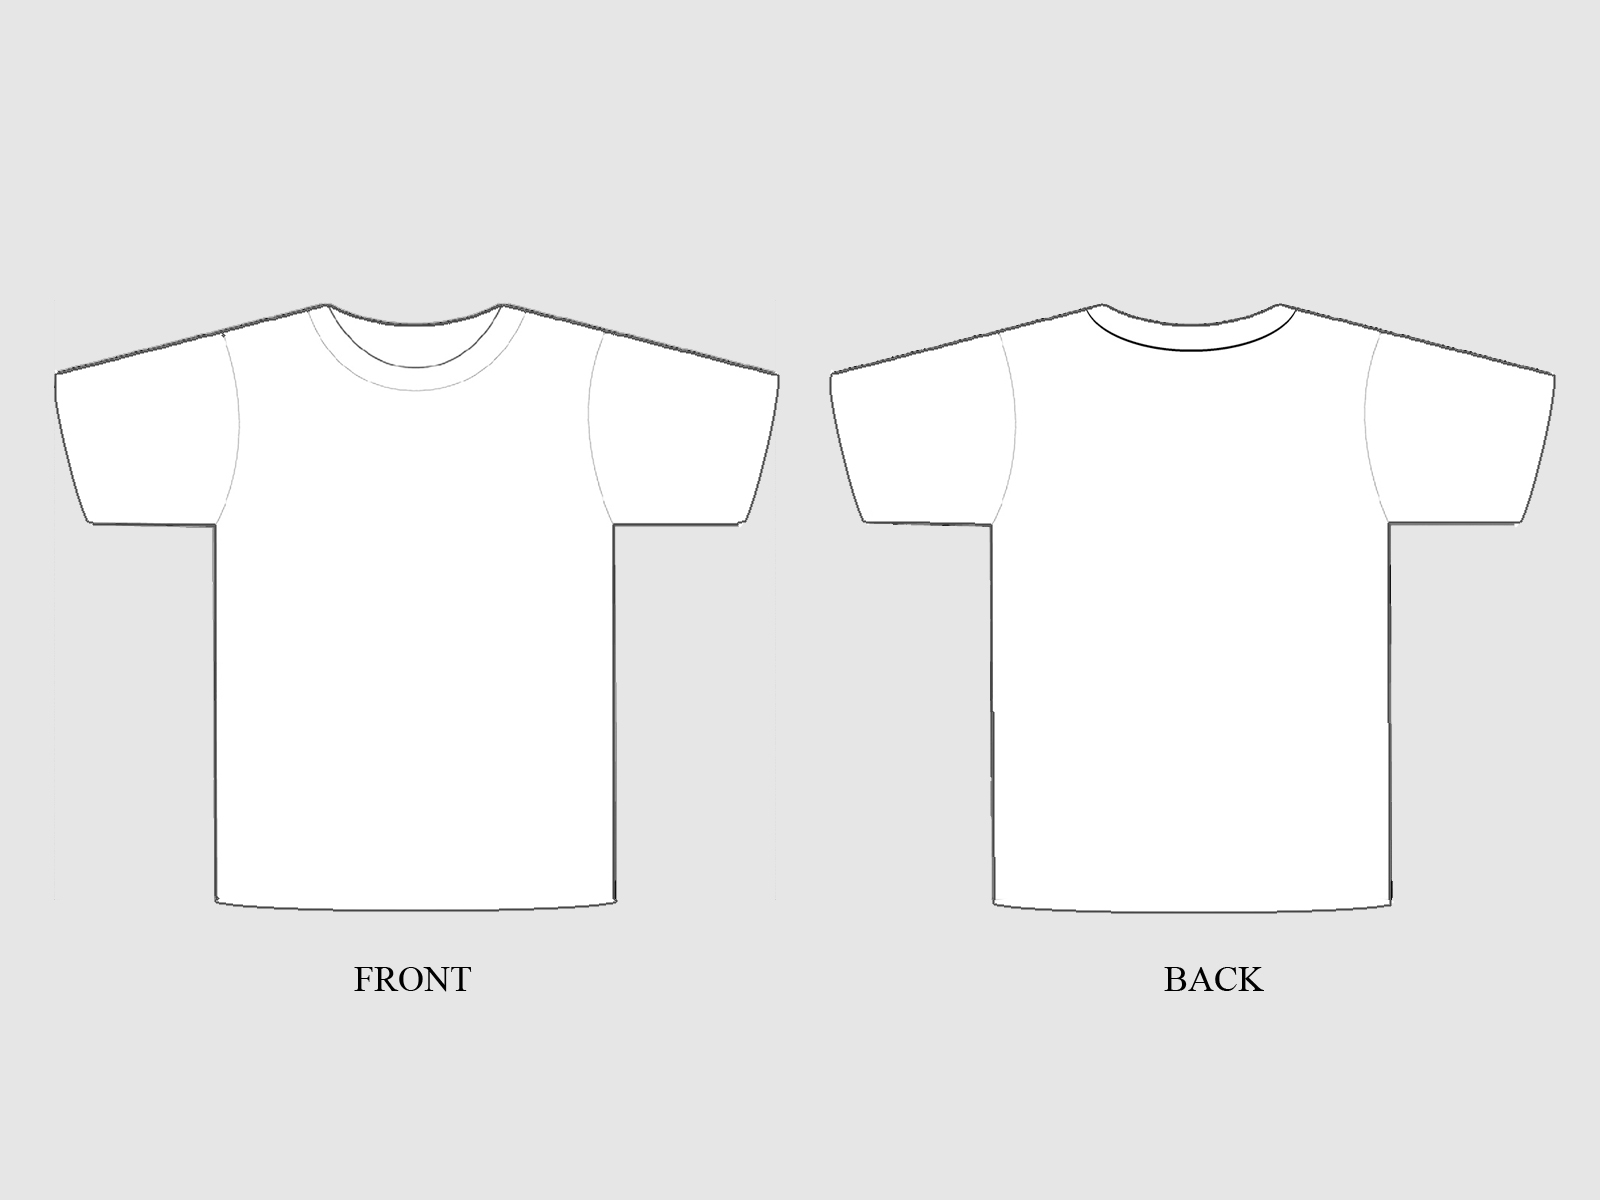 Customizable_T_shirt_Template_by_DV_n_tart.jpg